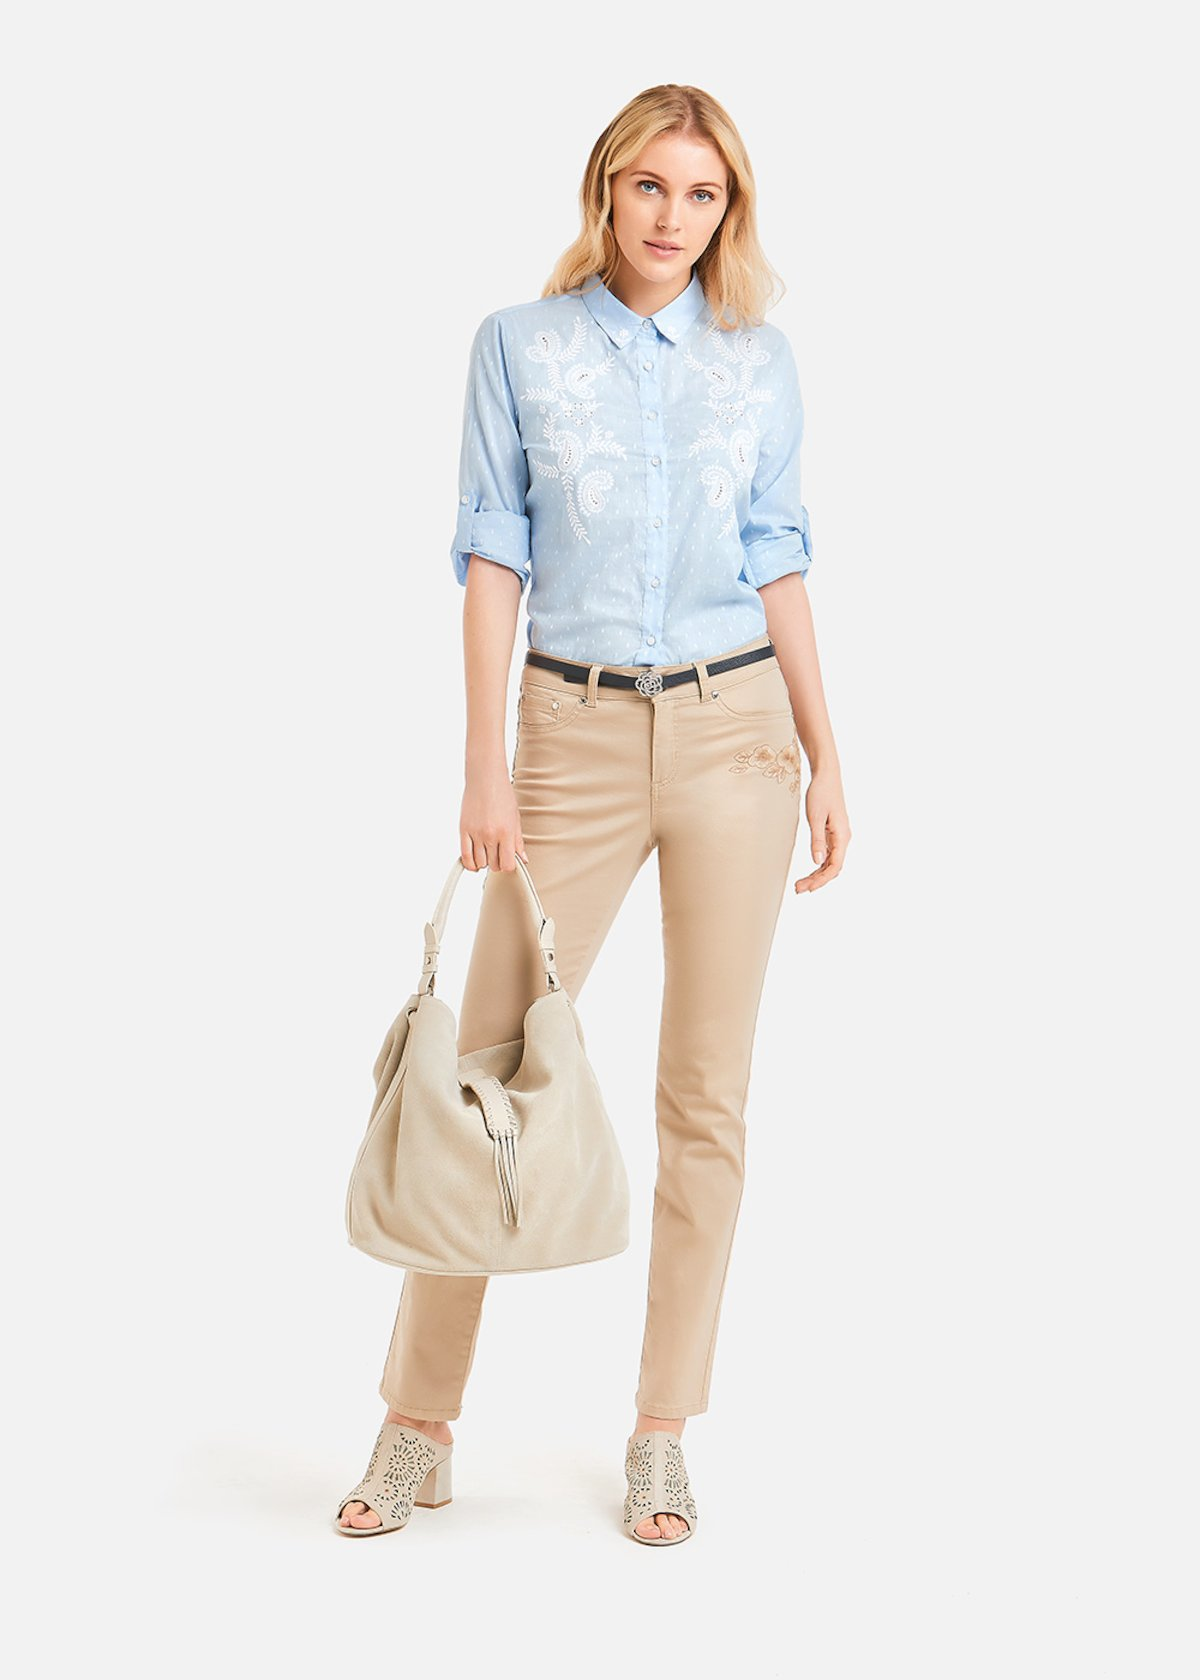 Charley shirt with white embroidery - Morning / White Pois